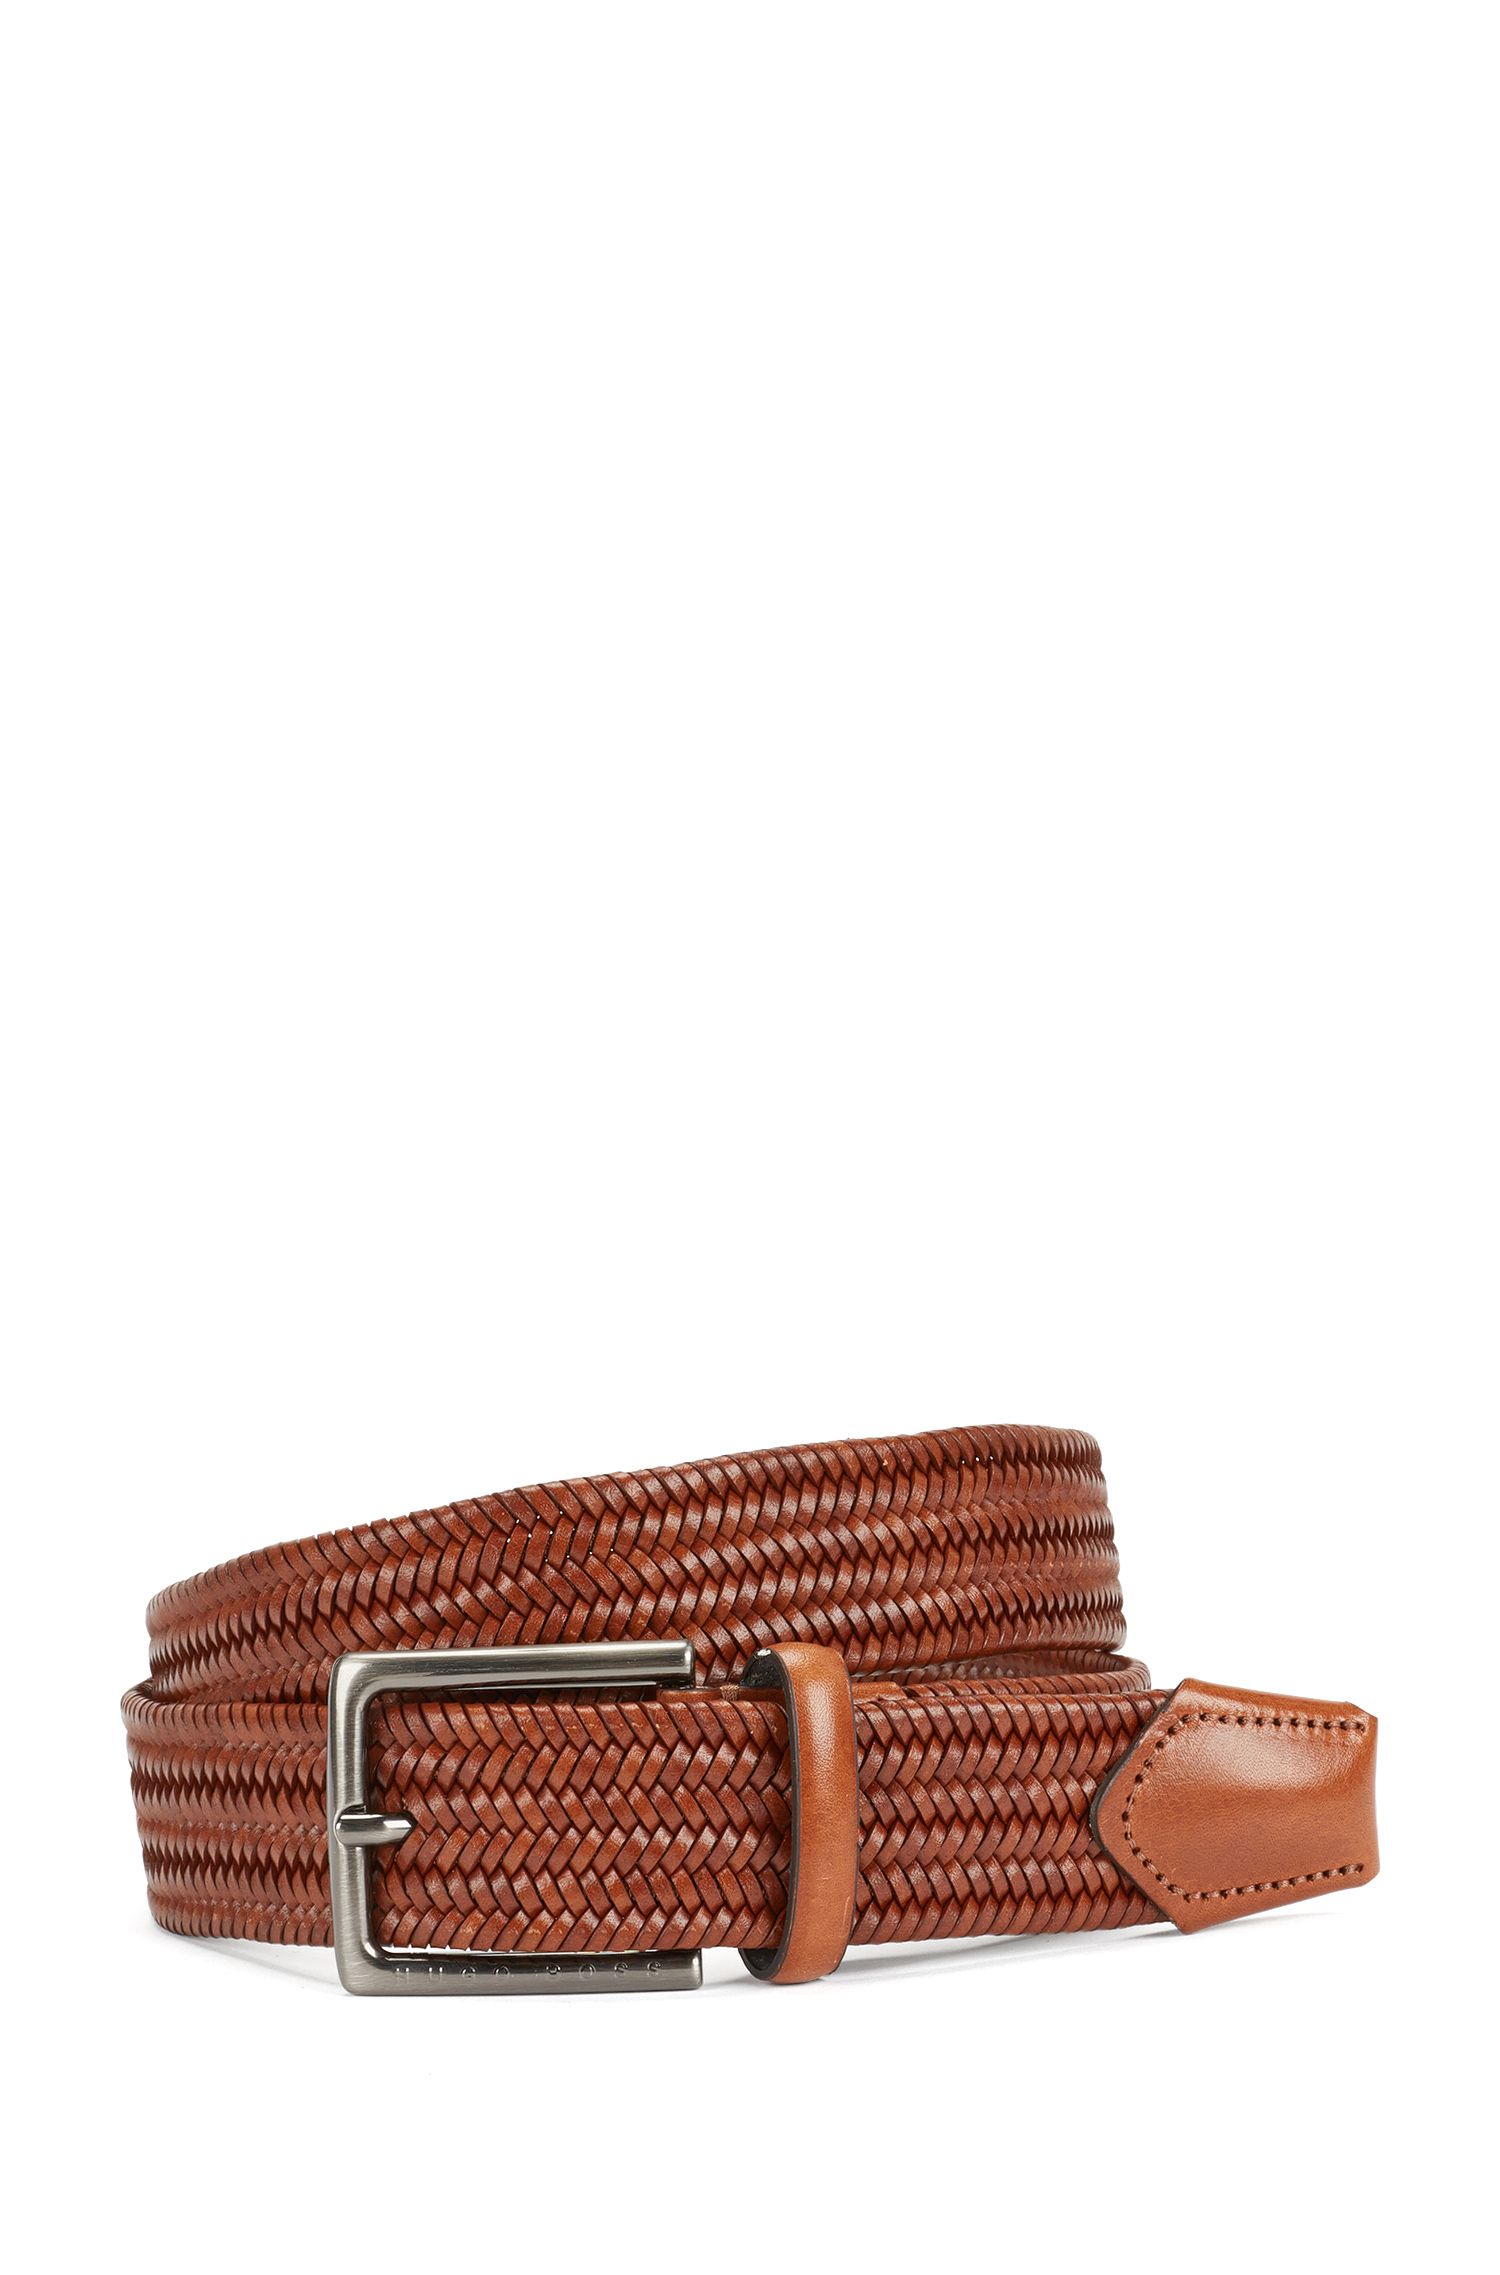 Leather Handcrafted Braided Belt | Semyo Sz35 Mxwn